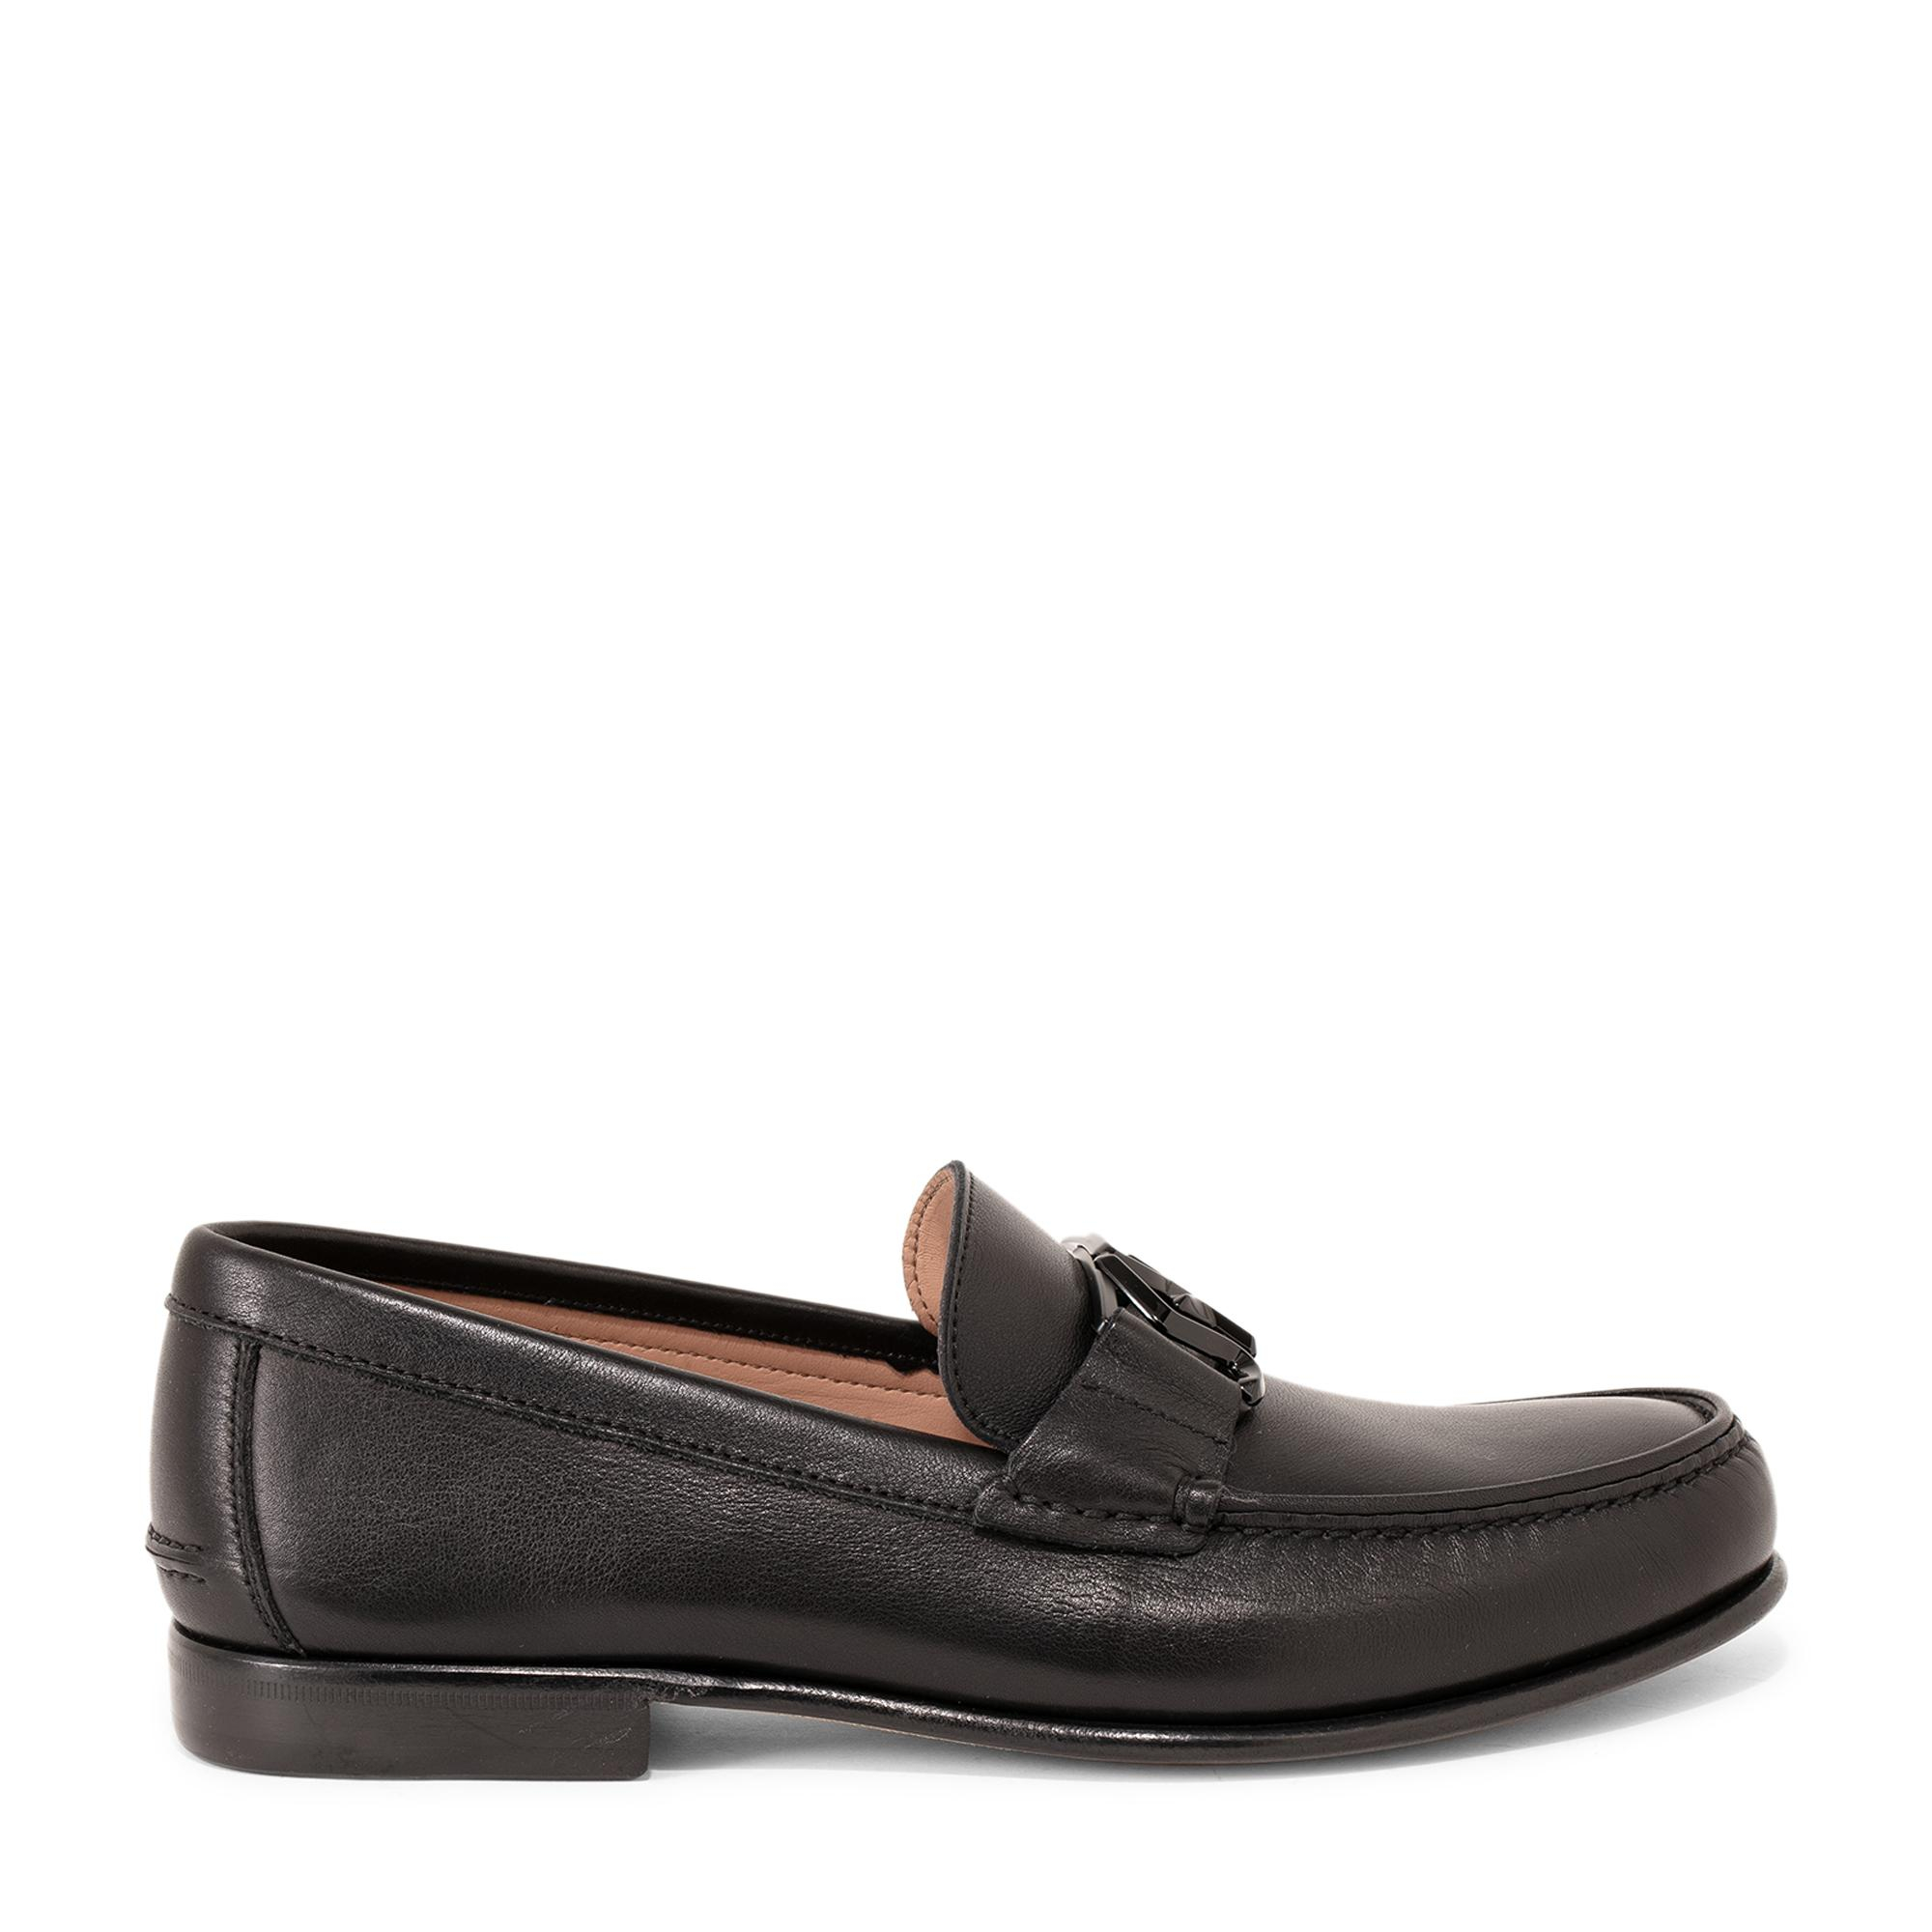 Prerov moccasin loafers